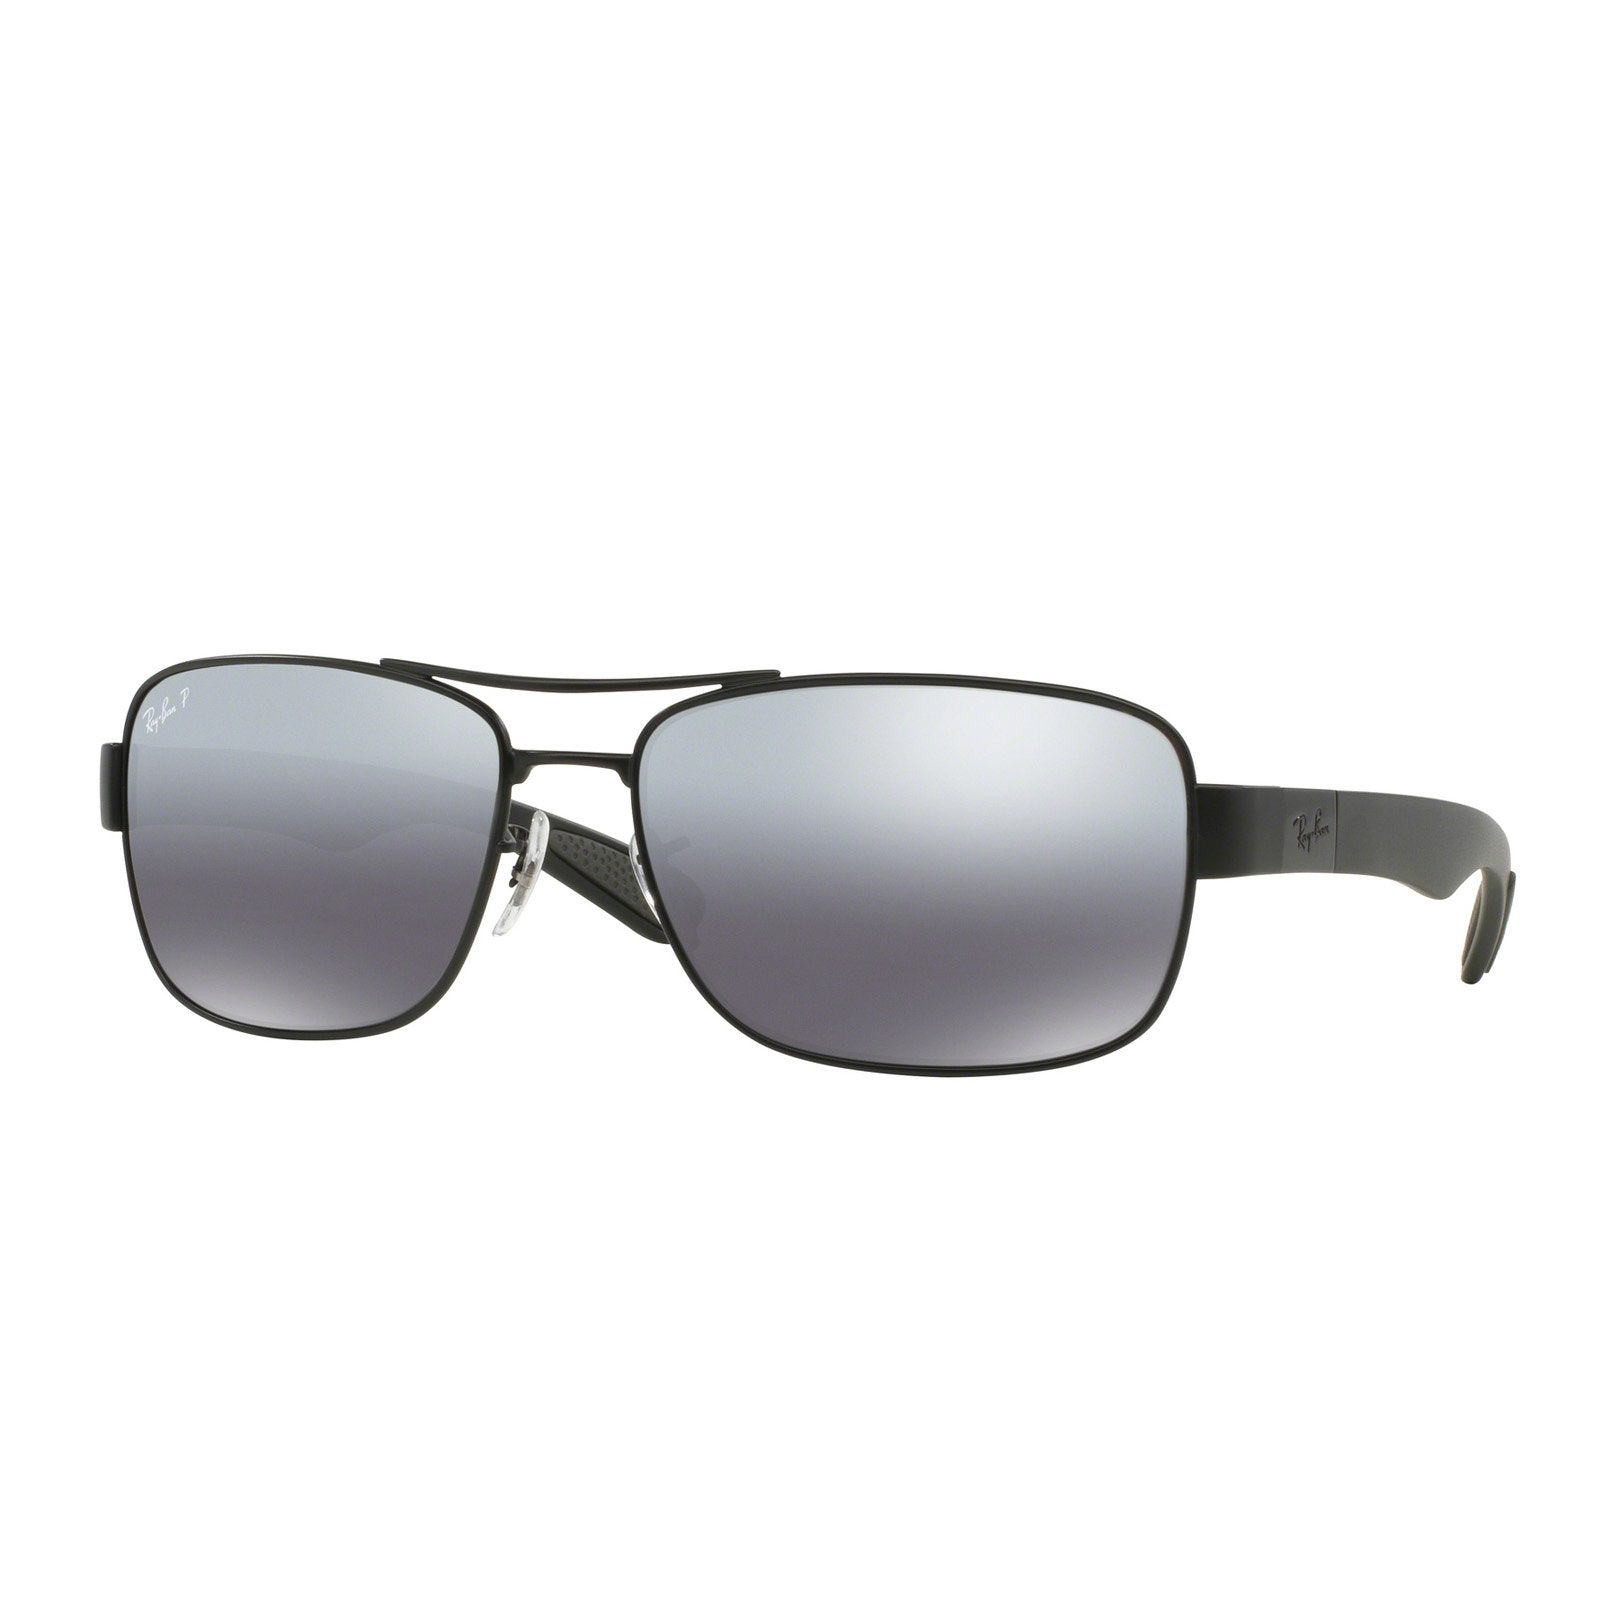 Ray-Ban RB3522 006/82 Sunglasses